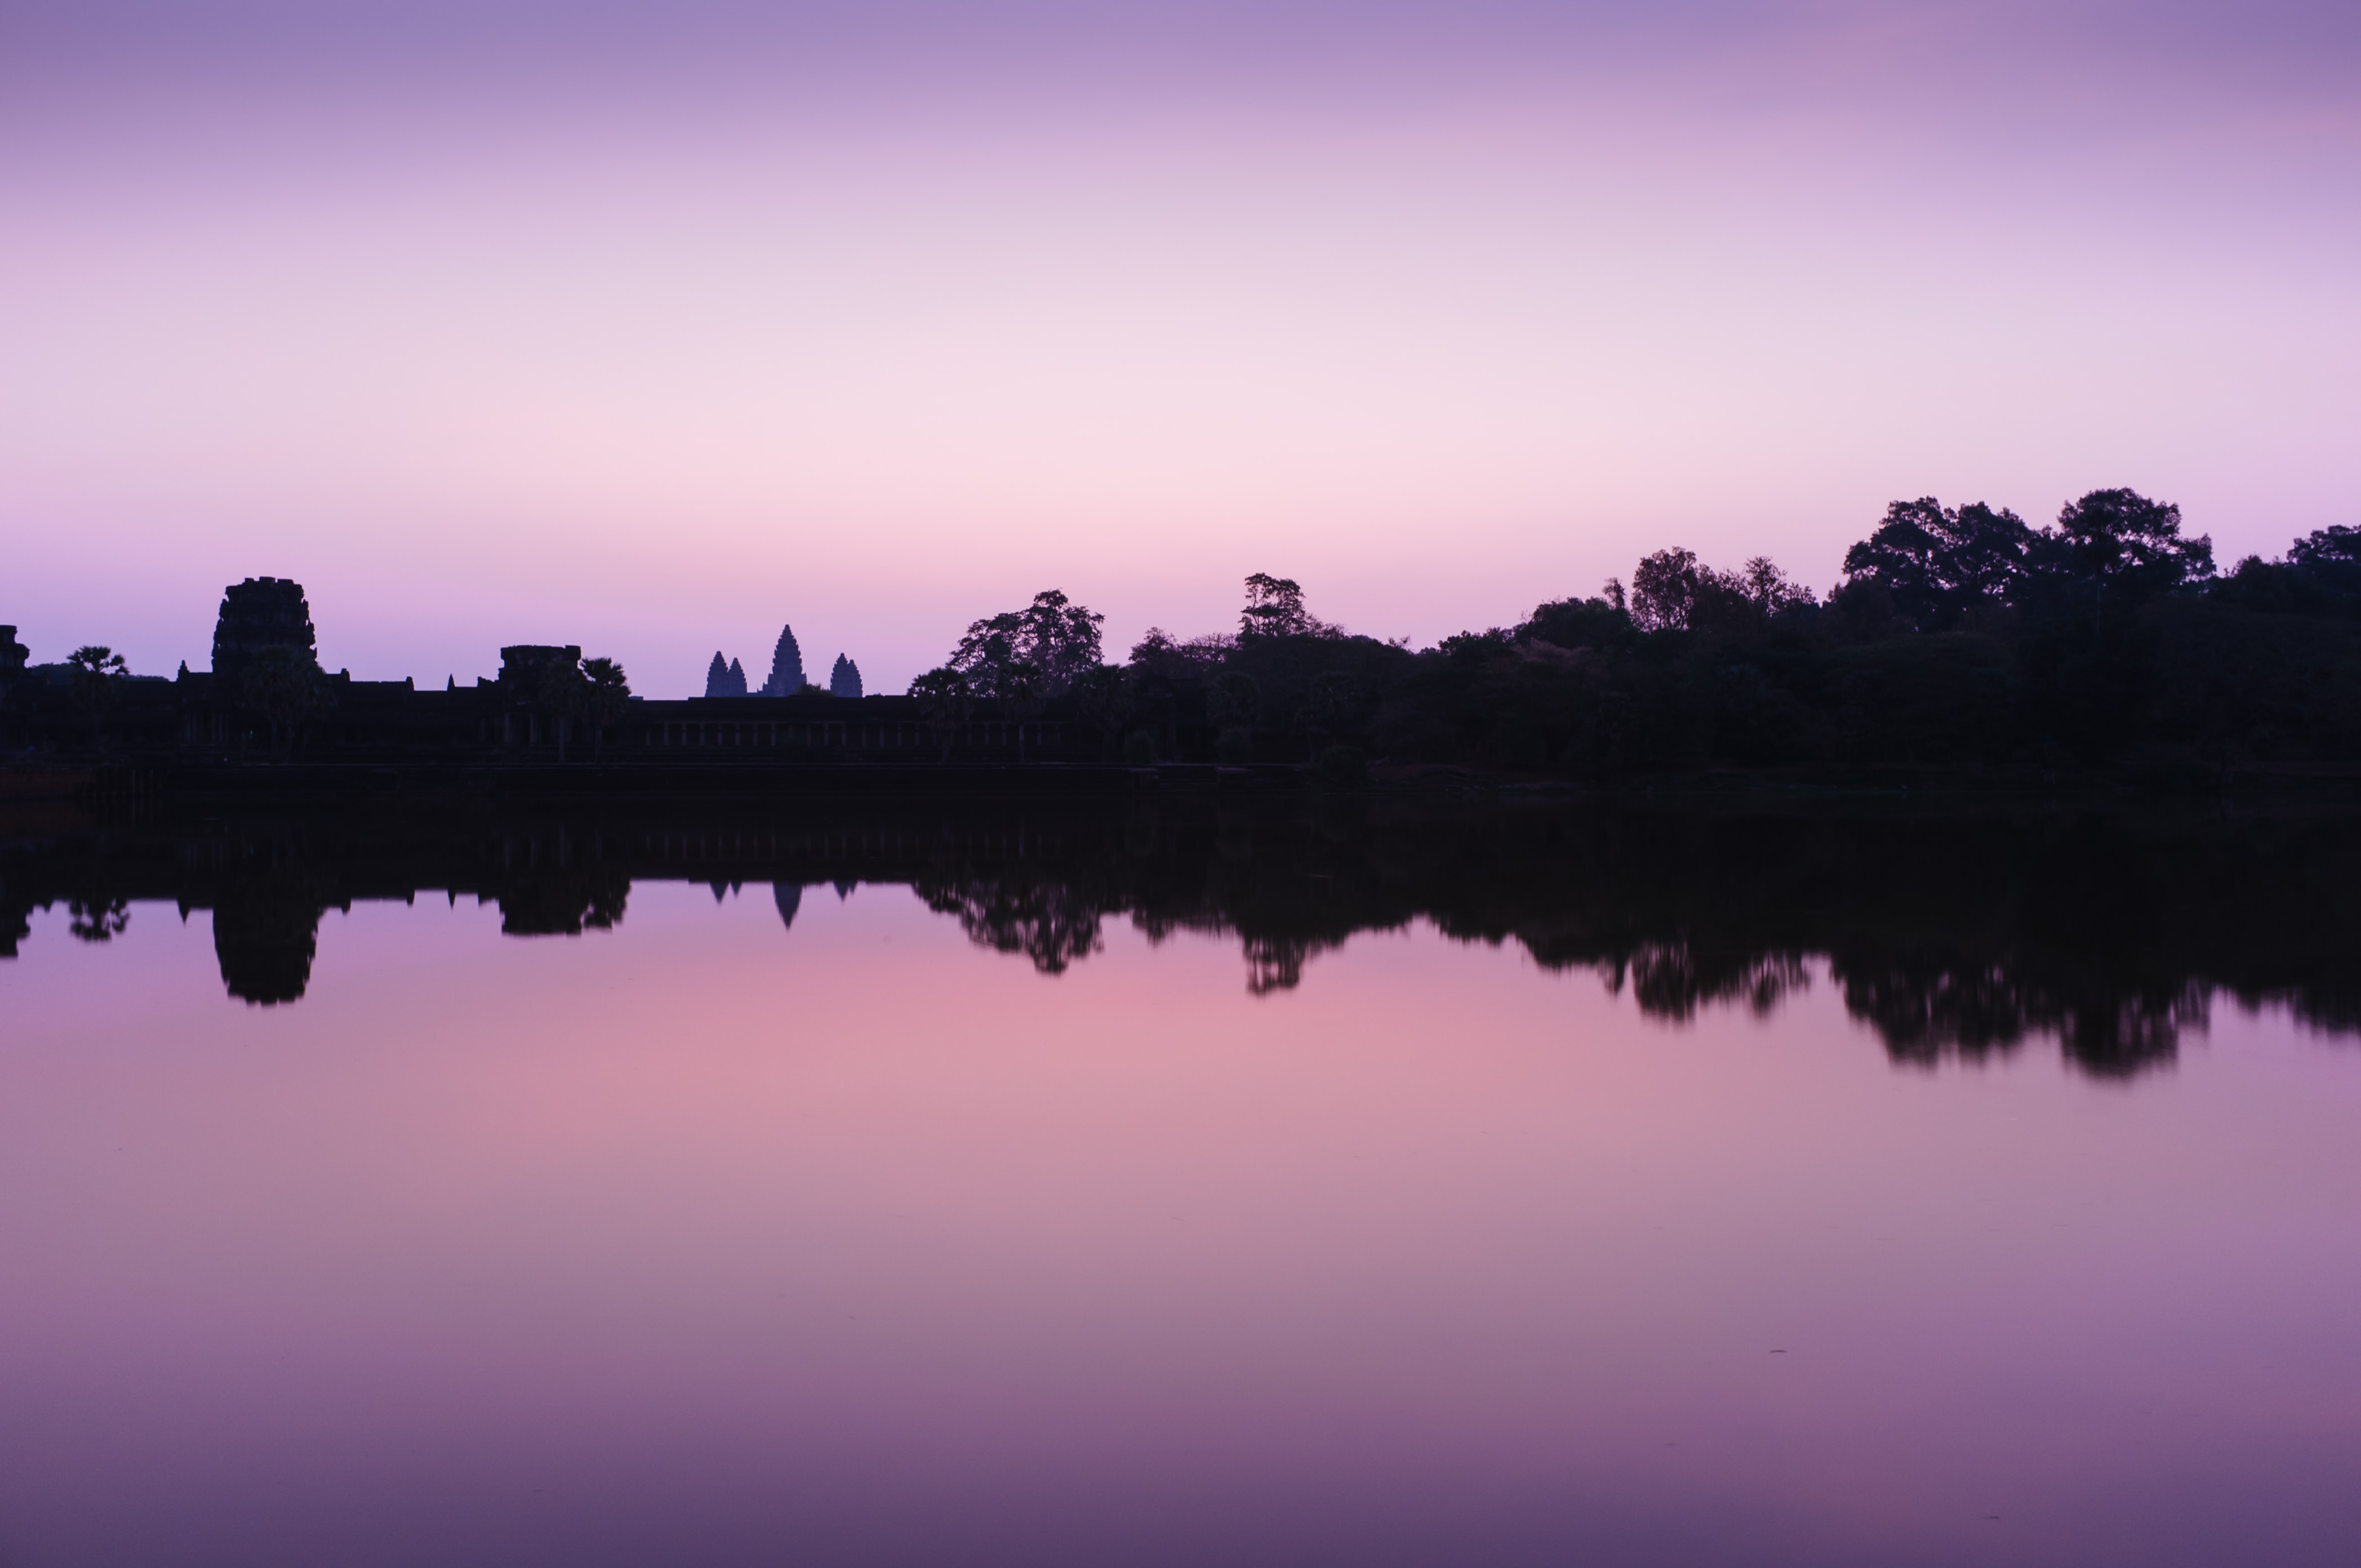 Lake shoreline is reflected in still water during a purple sunset at dusk.